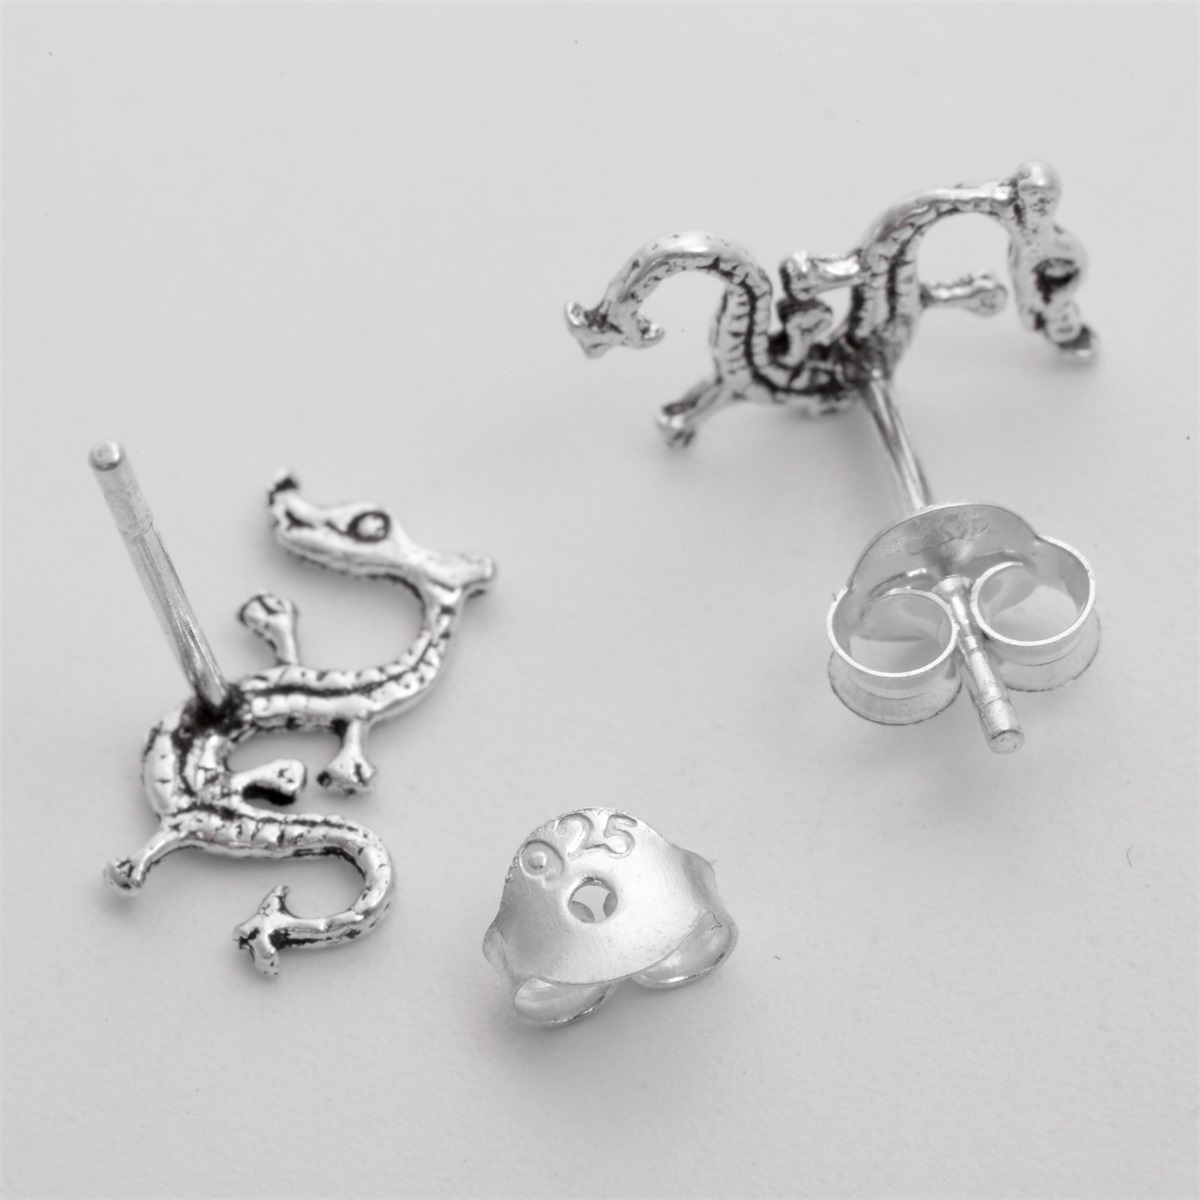 US $4.99 |YACQ 925 Sterling Silver Dragon Stud Earrings Halloween Party  Fine Jewelry Gift for Women Daughter Girls Dropshipping CE159-in Earrings  from ...